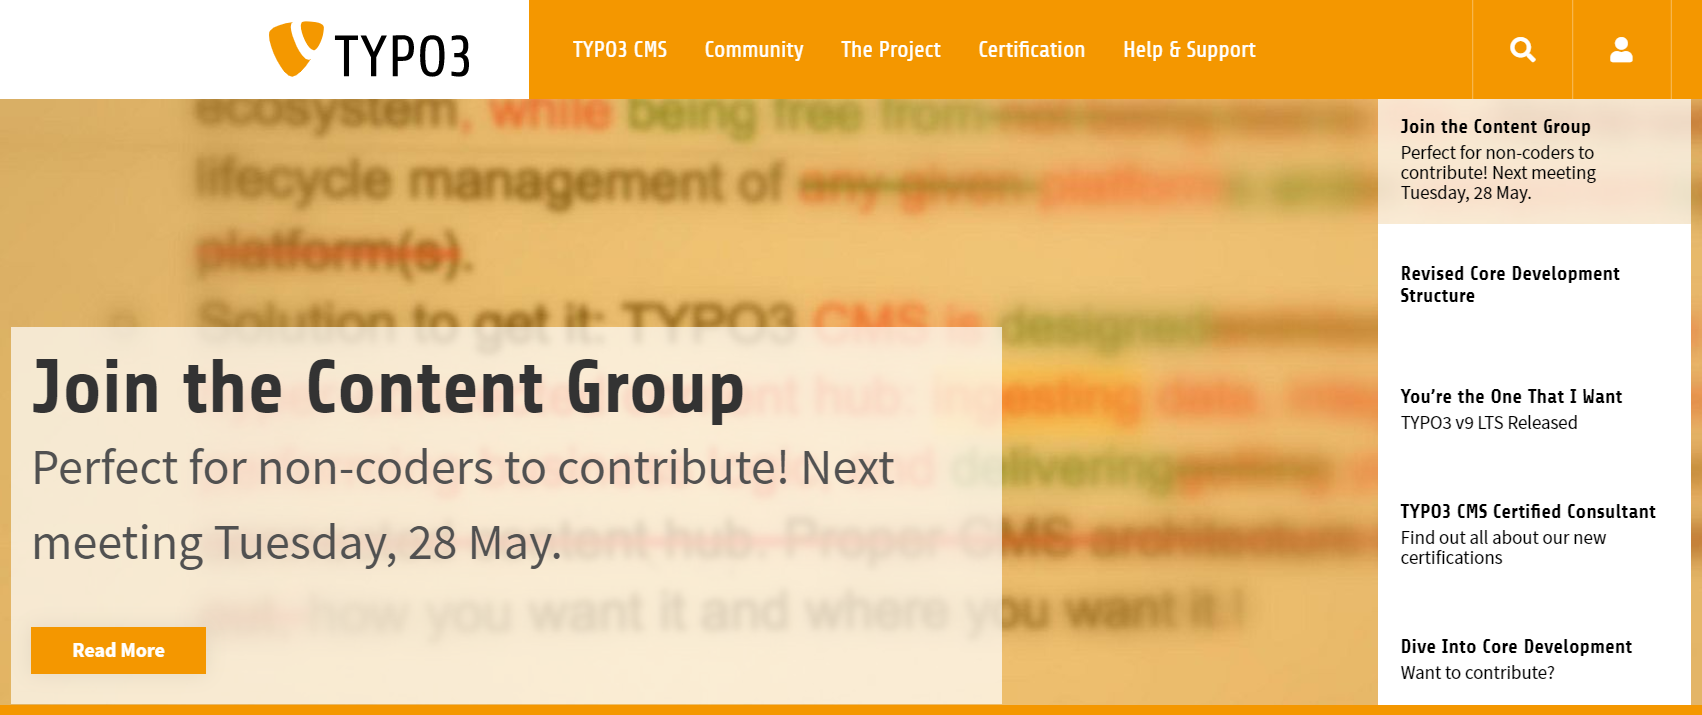 typo3 cms best content management systems